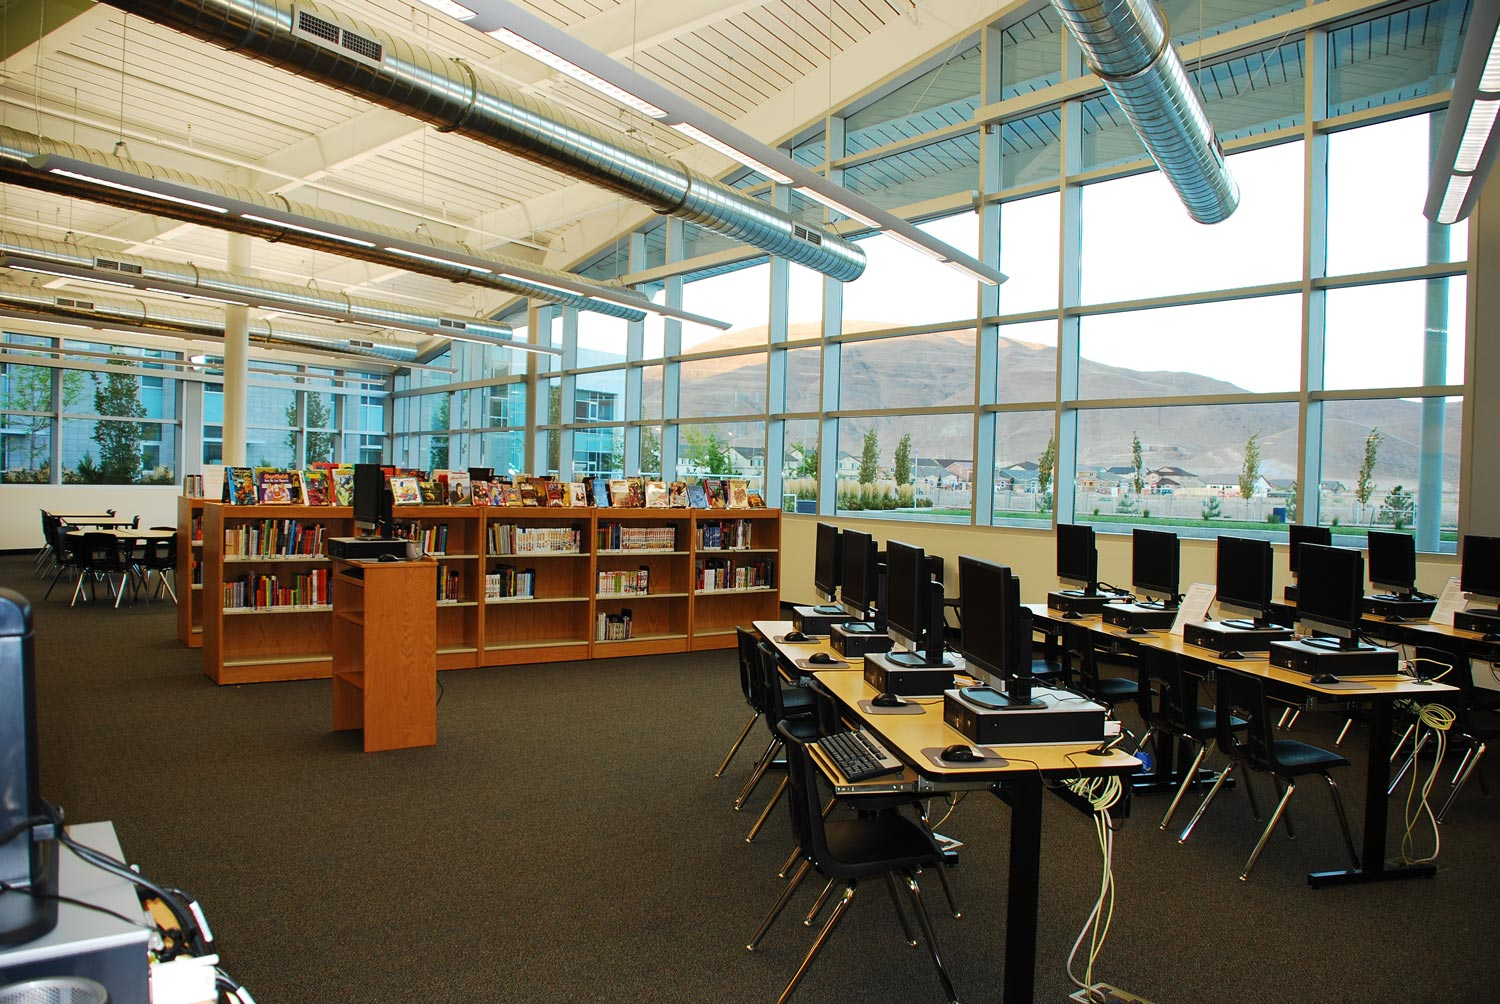 WCSD Photovoltaic Systems at 29 Schools (2.8MW Total) | Washoe County, Nevada